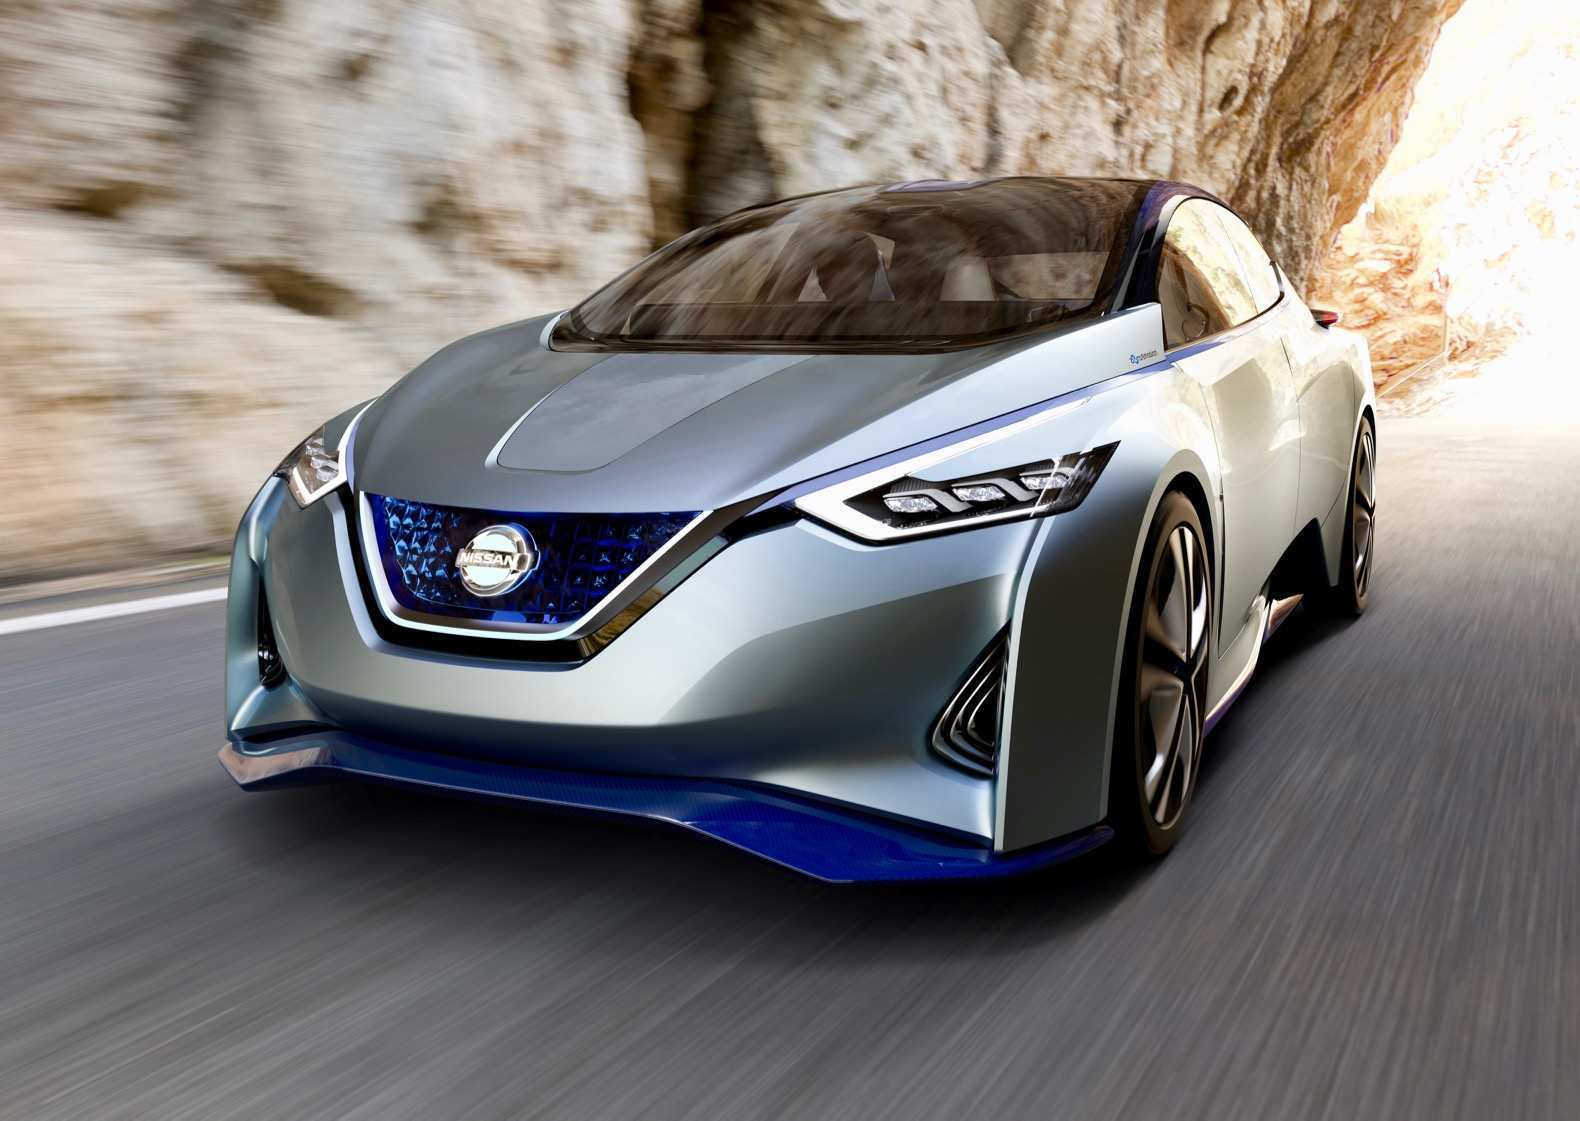 45 Great Nissan 2020 Electric Car Wallpaper by Nissan 2020 Electric Car